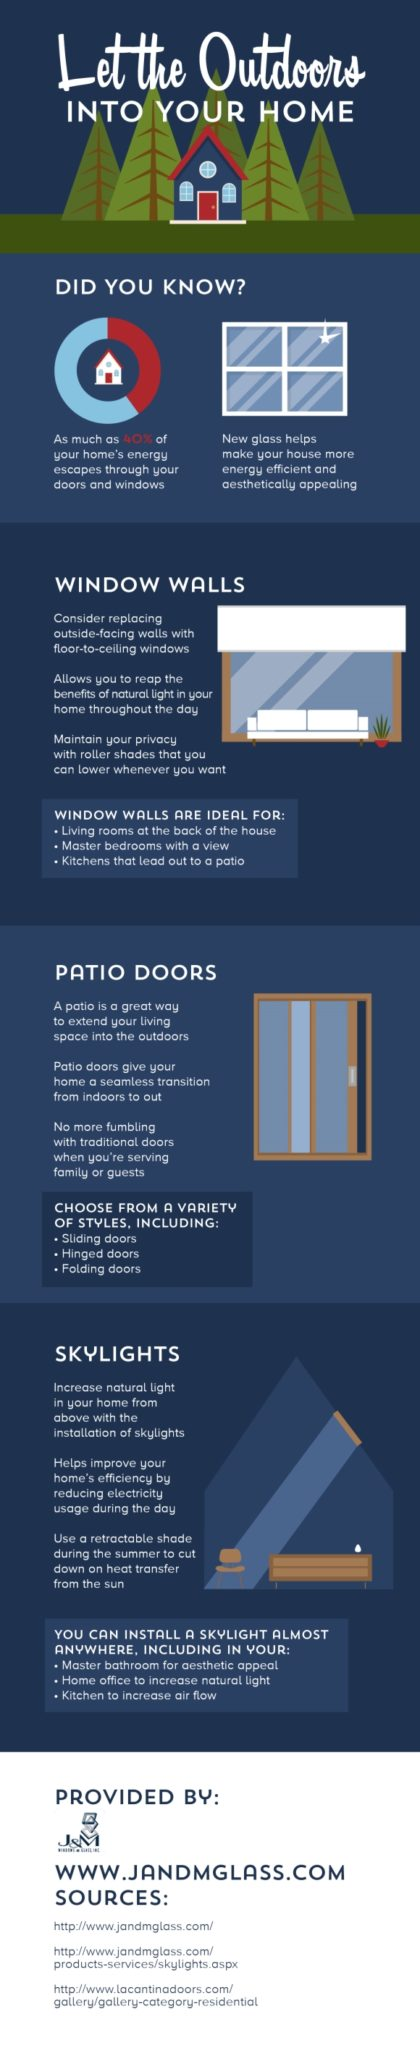 Let-the-Outdoors-Into-Your-Home-Infographic